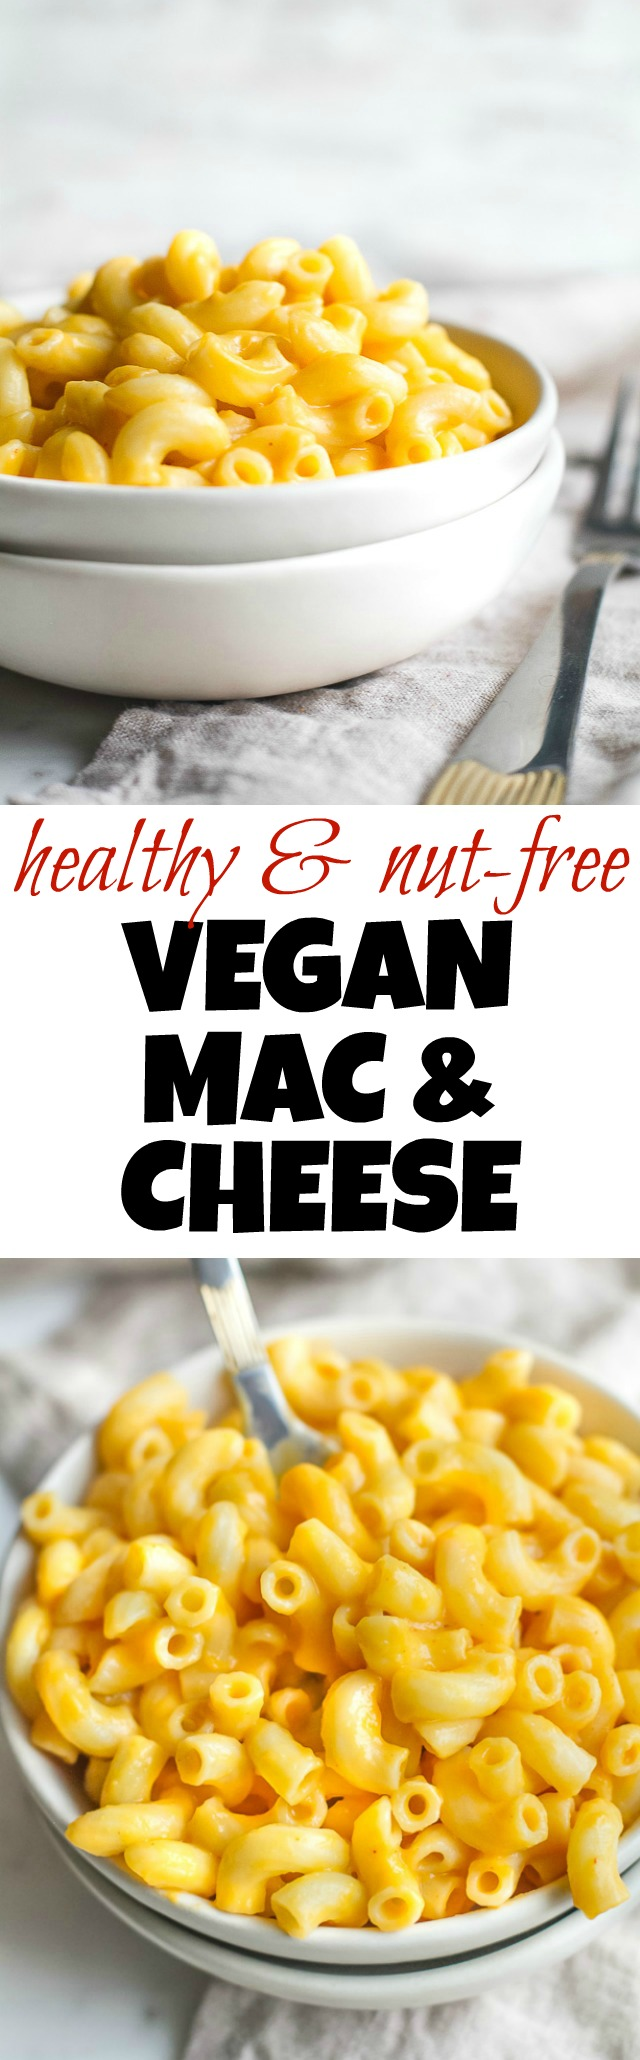 A vegan mac & cheese that's smooth, creamy, nut-free, and made with simple healthy ingredients! The versatile cheesy sauce tastes and feels so authentic that it's guaranteed to be loved by vegans and non-vegans alike. Suitable for those following dairy-free, nut-free, gluten-free, vegan, and paleo diets. | runningwithspoons.com